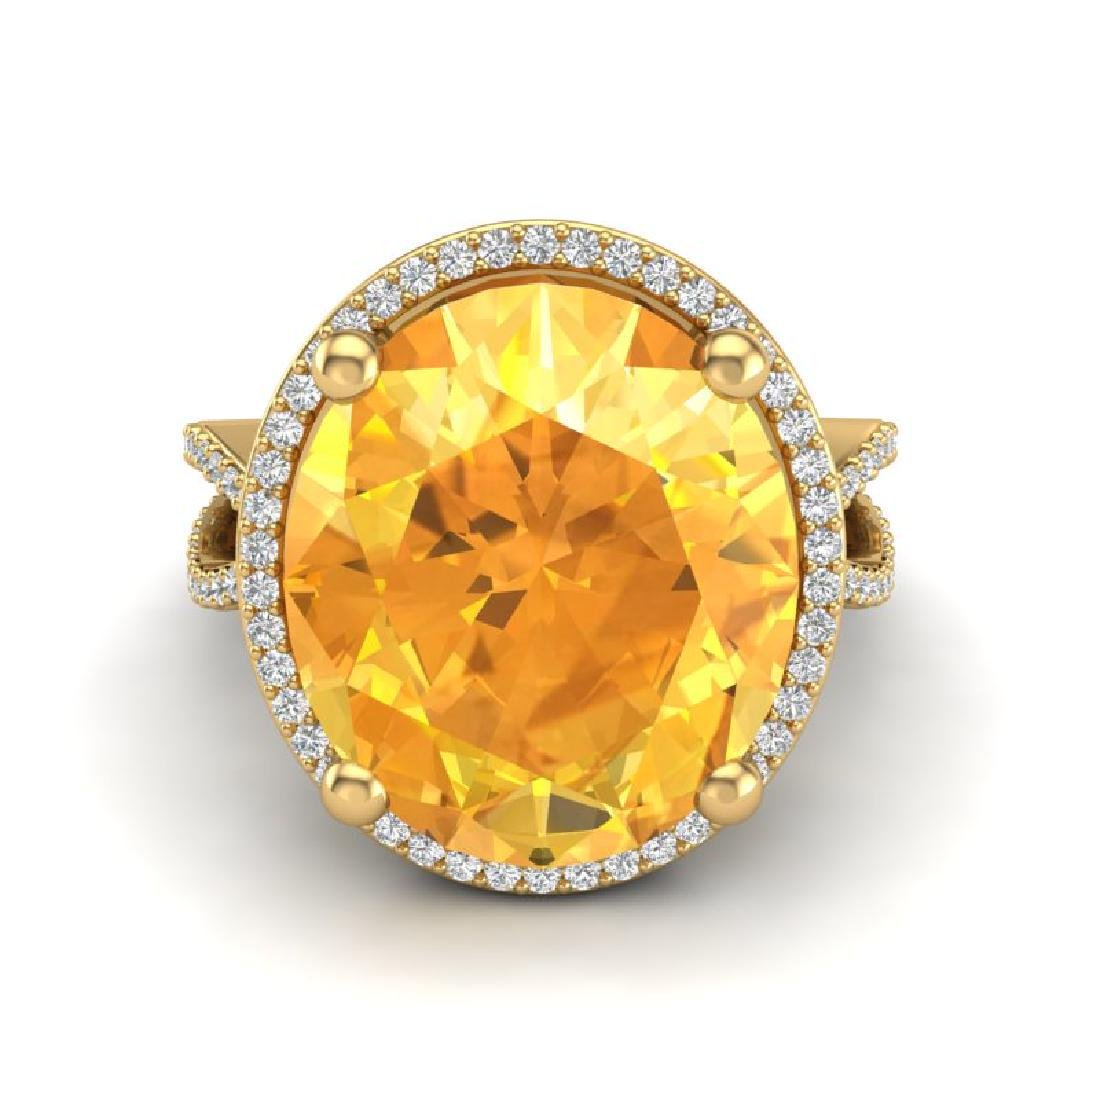 10 CTW Citrine & Micro Pave VS/SI Diamond Halo Ring 18K